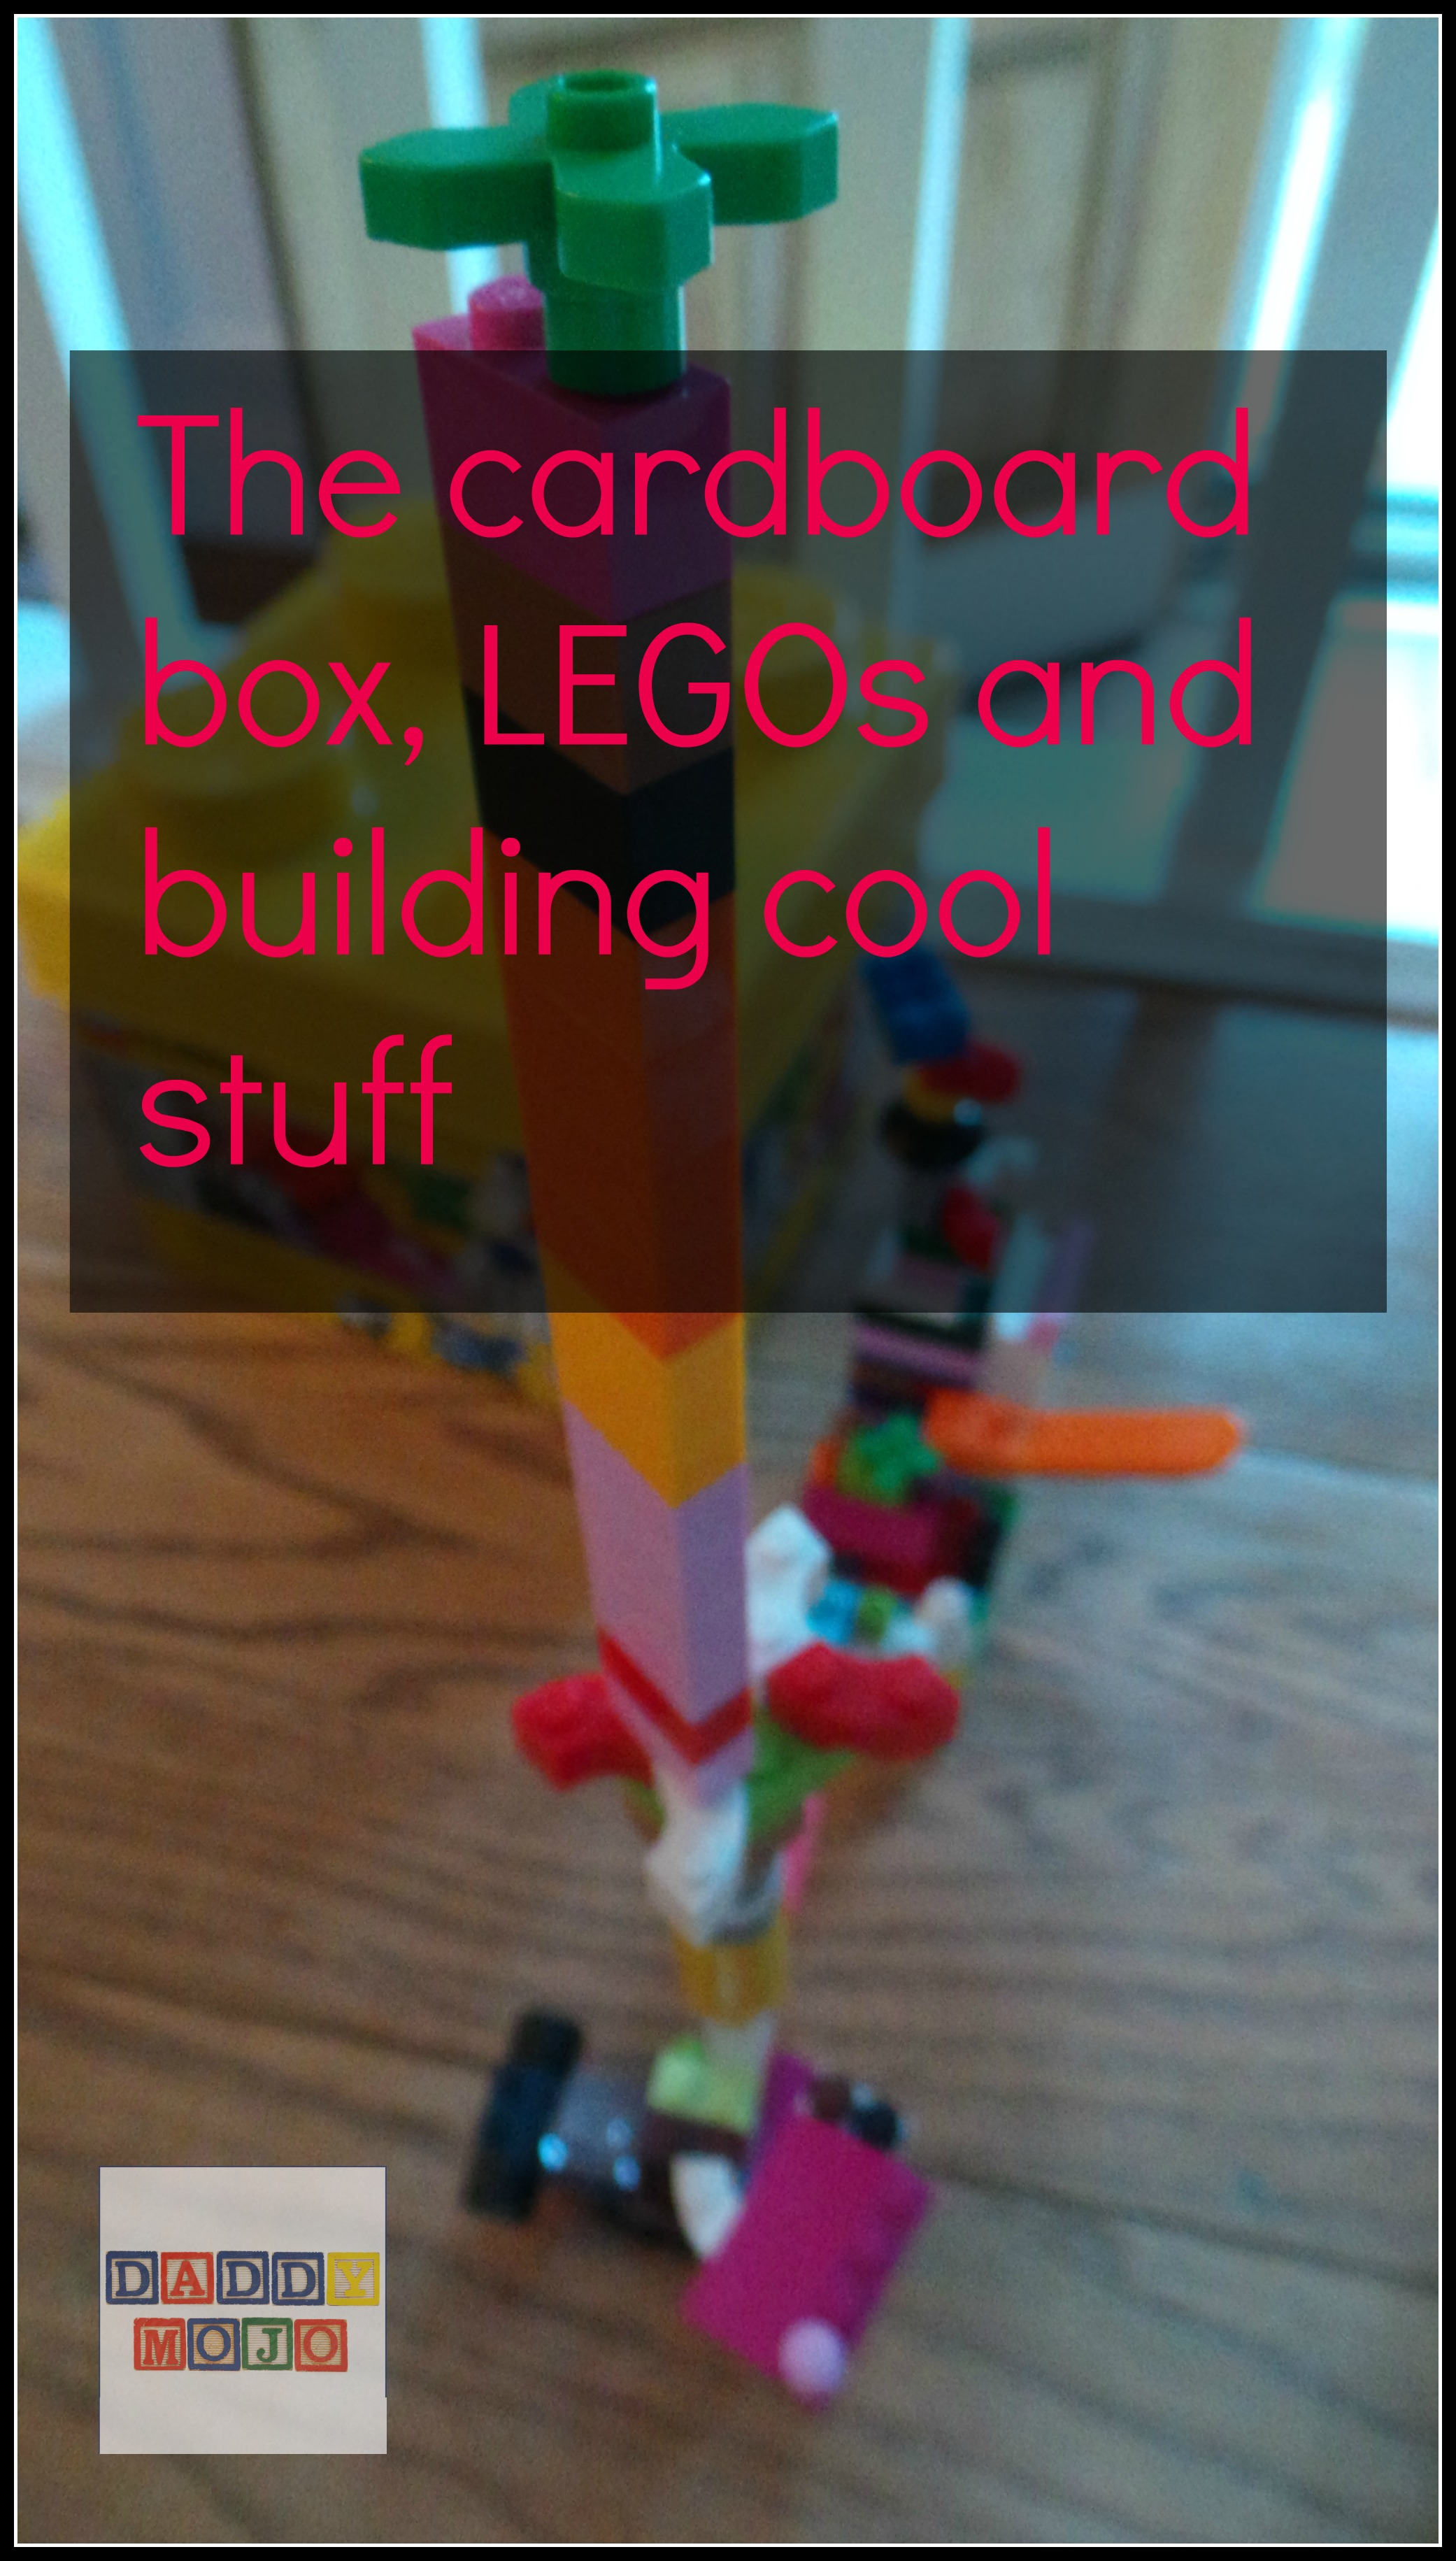 My old box and small people building big things with LEGO | Daddy Mojo